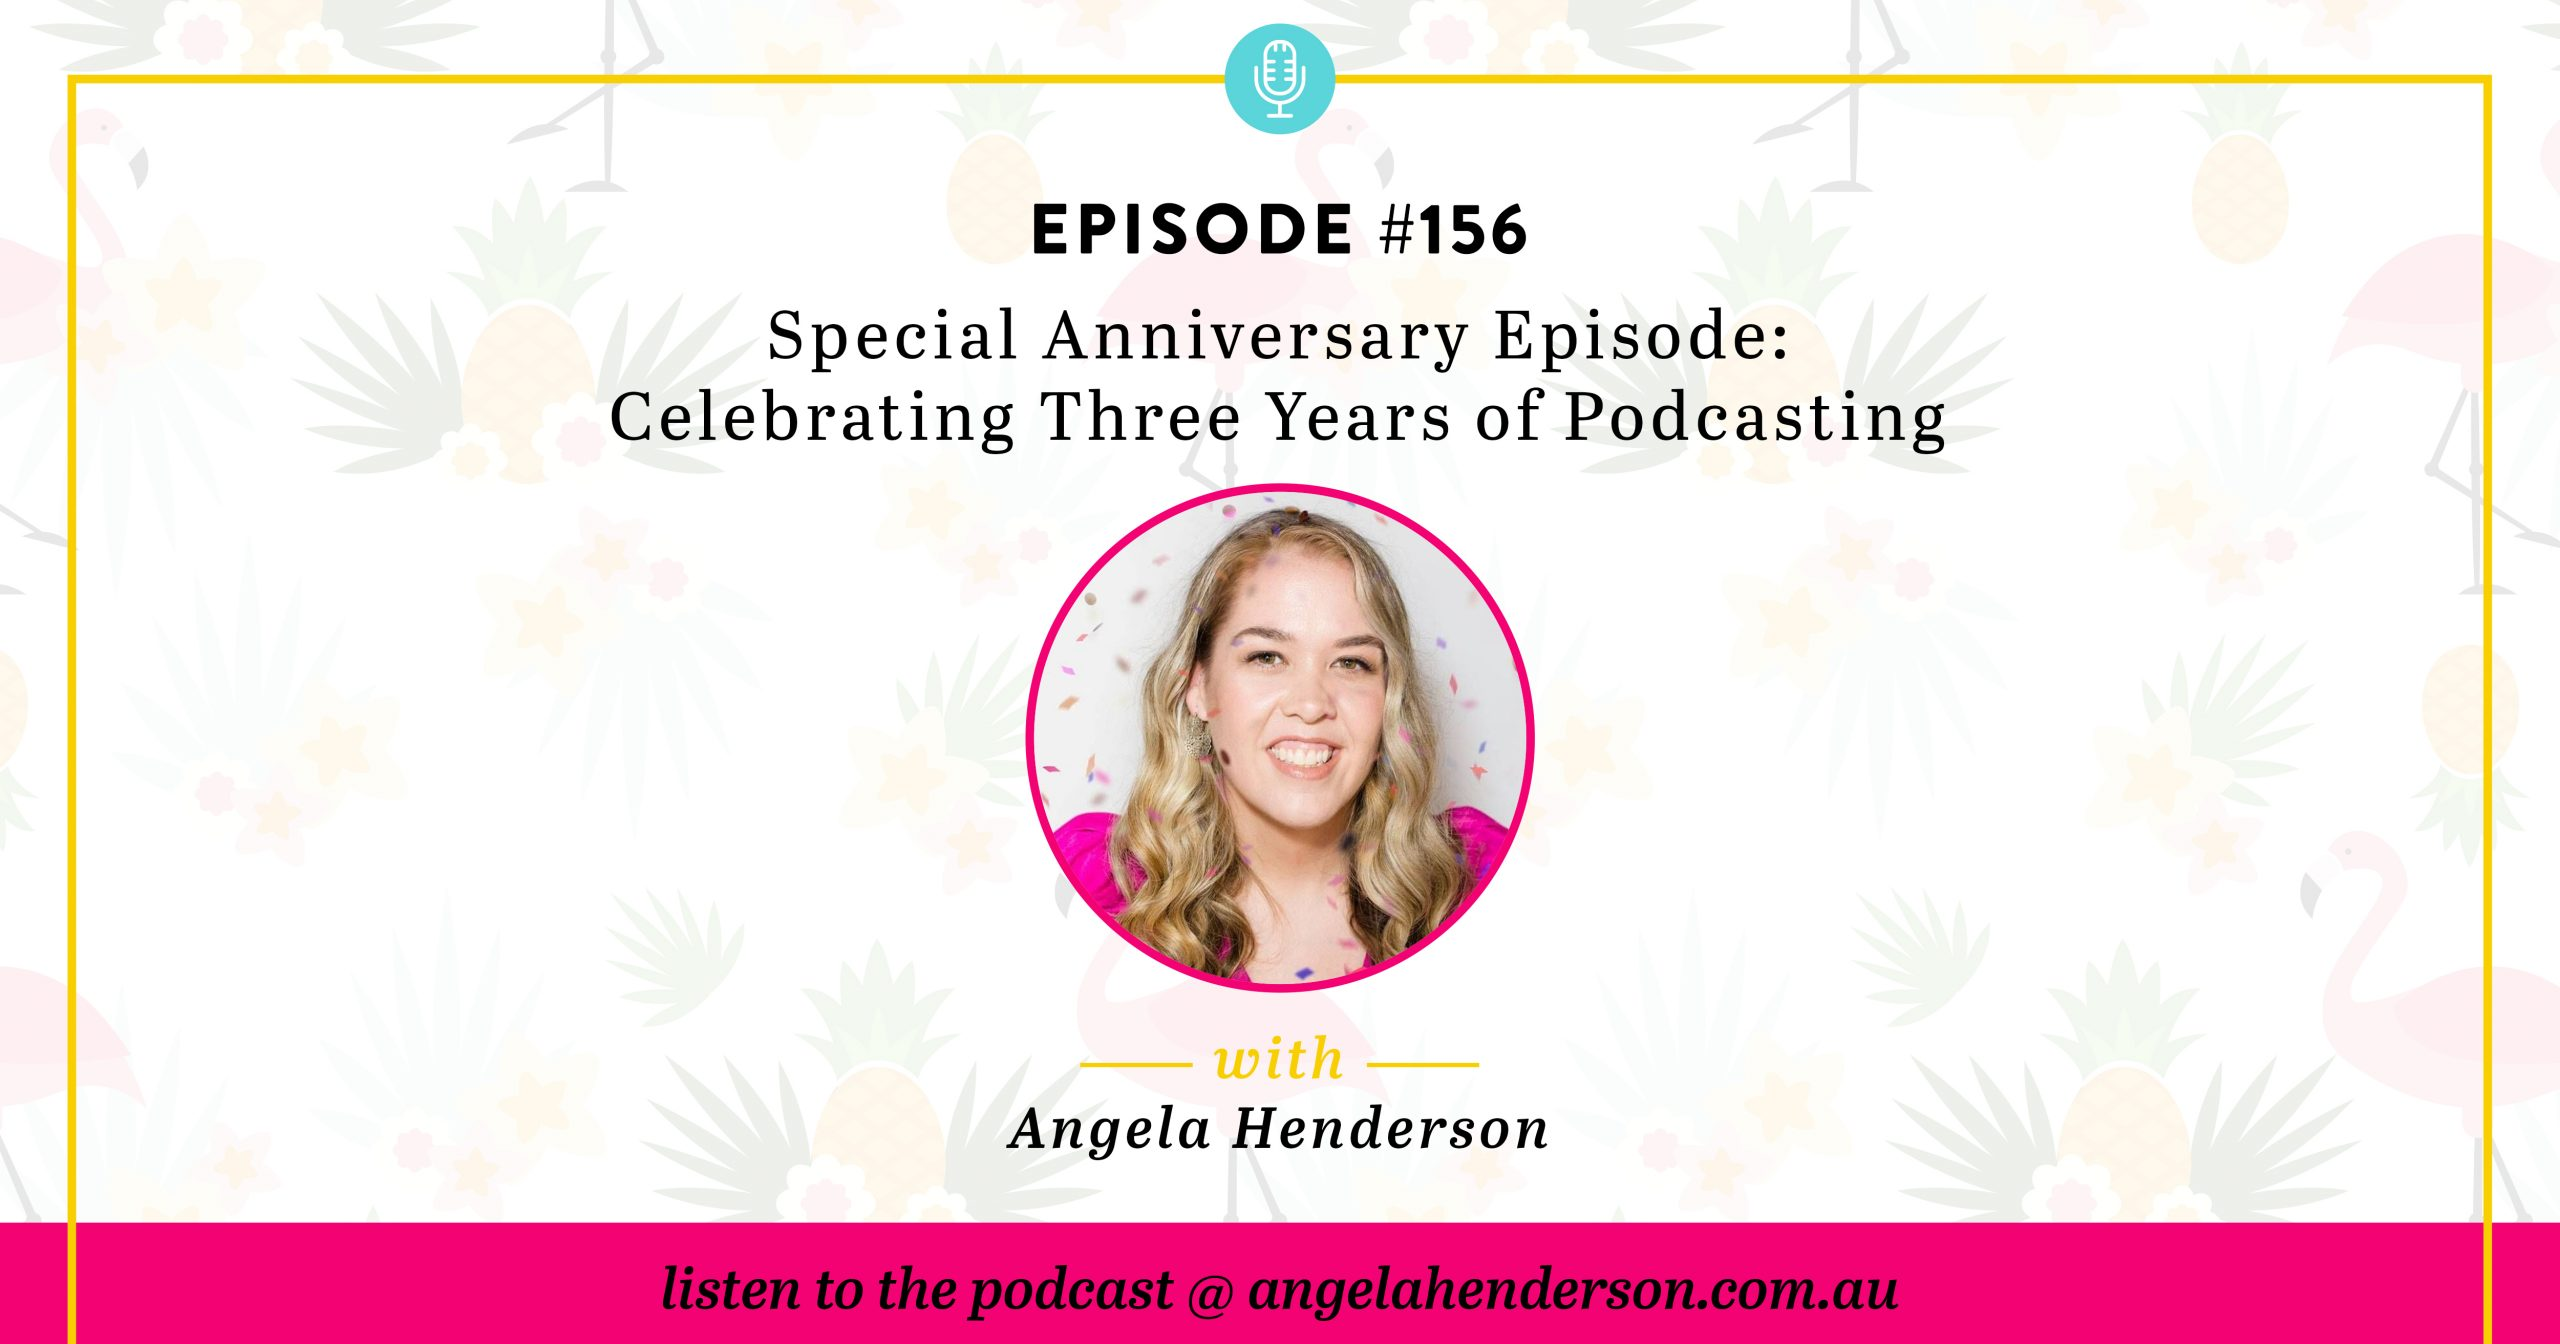 Special Anniversary Episode: Celebrating Three Years of Podcasting